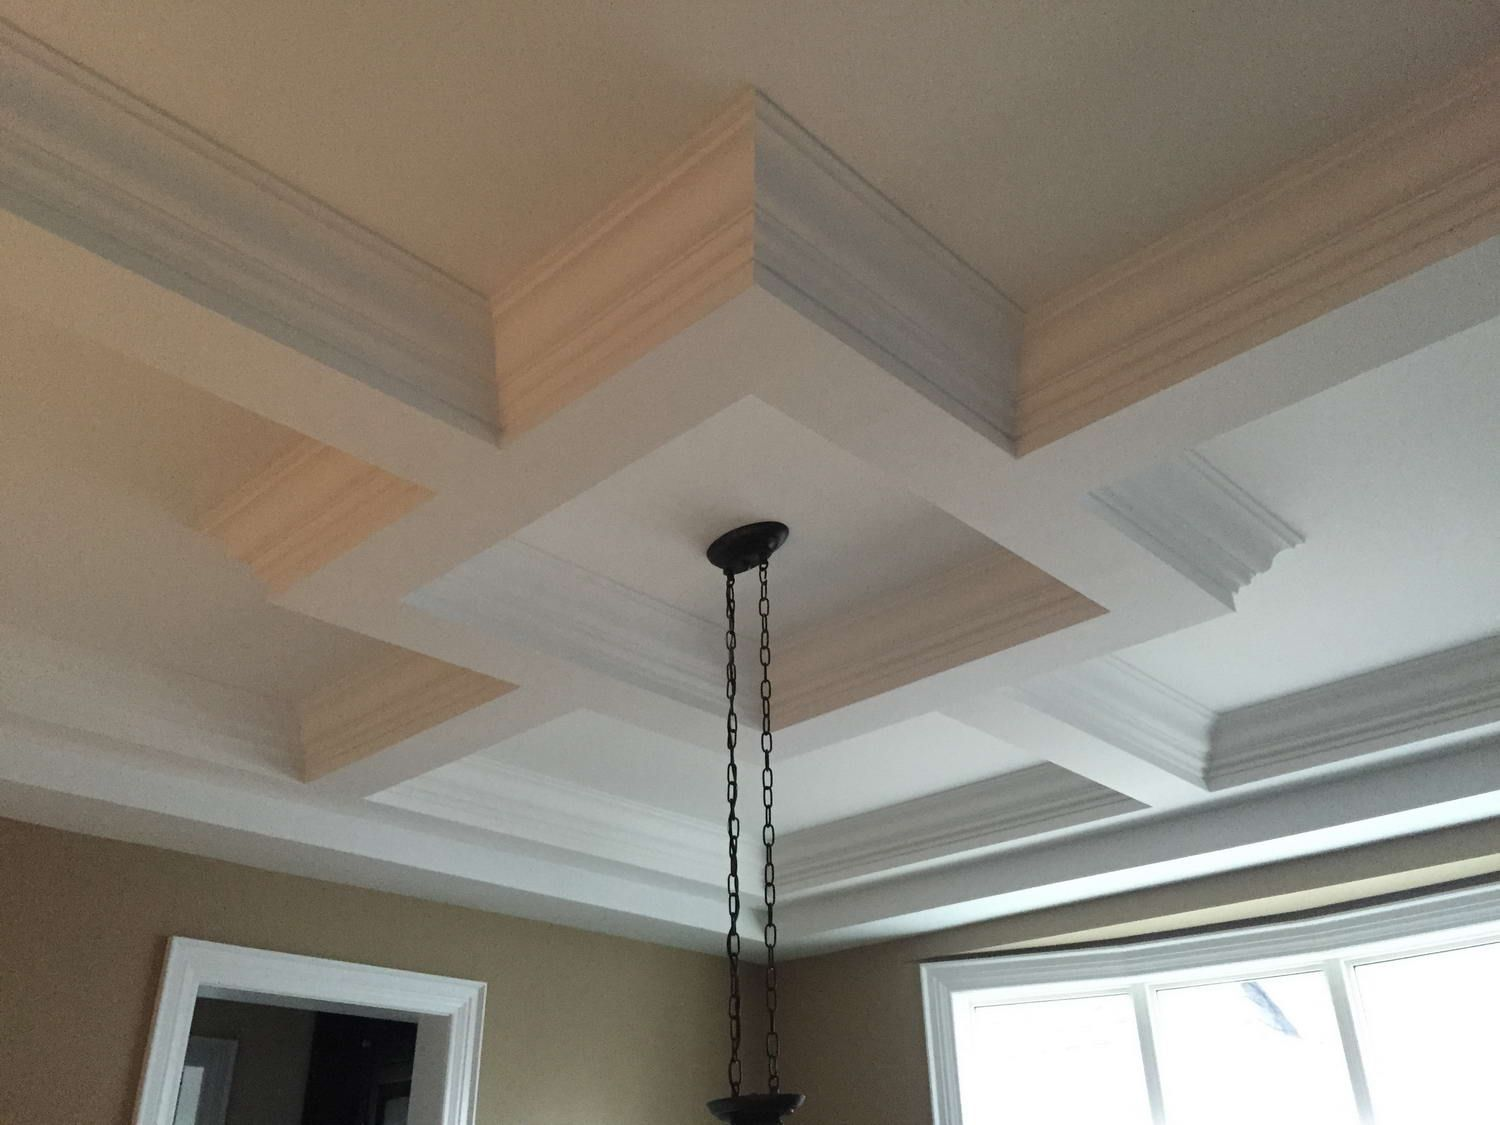 Get the best Coffered Ceiling in Toronto. We offer top-grade Crown Moulding installation, Trim Decoration, Wainscoting, Potlights & more. Call us.